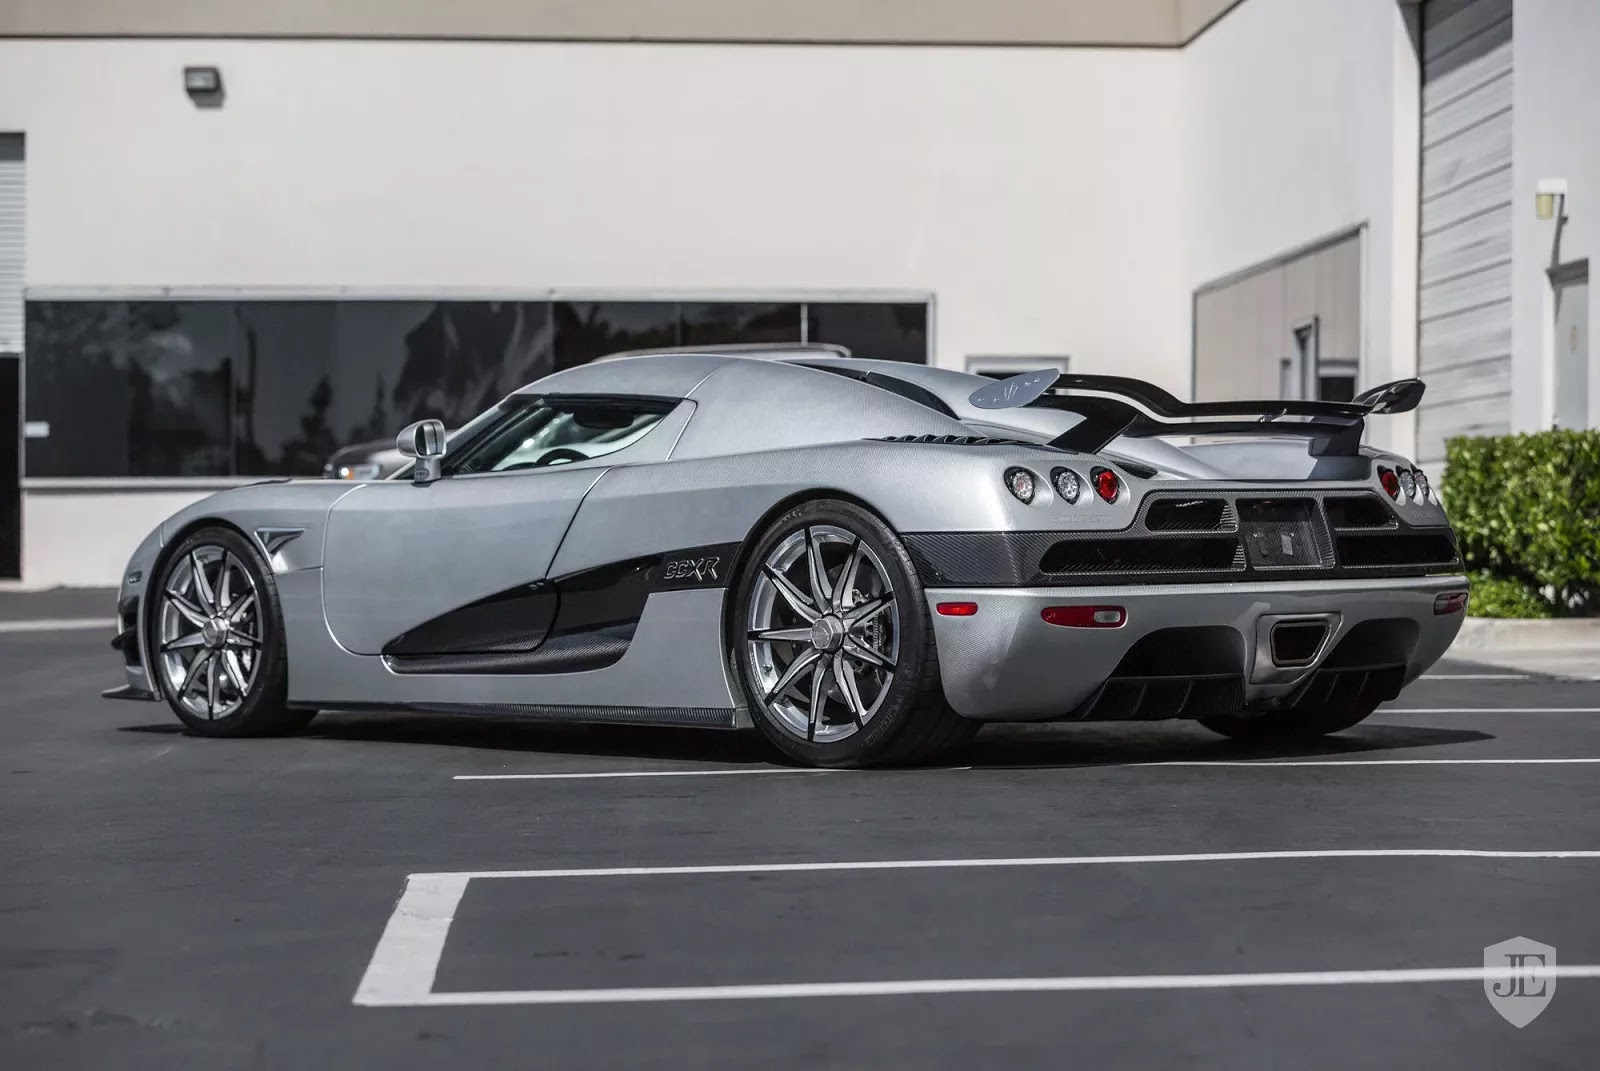 Safety Car Motogp 2019 Koenigsegg Ccxr Trevita Owned By Mayweather Up For Sale Again